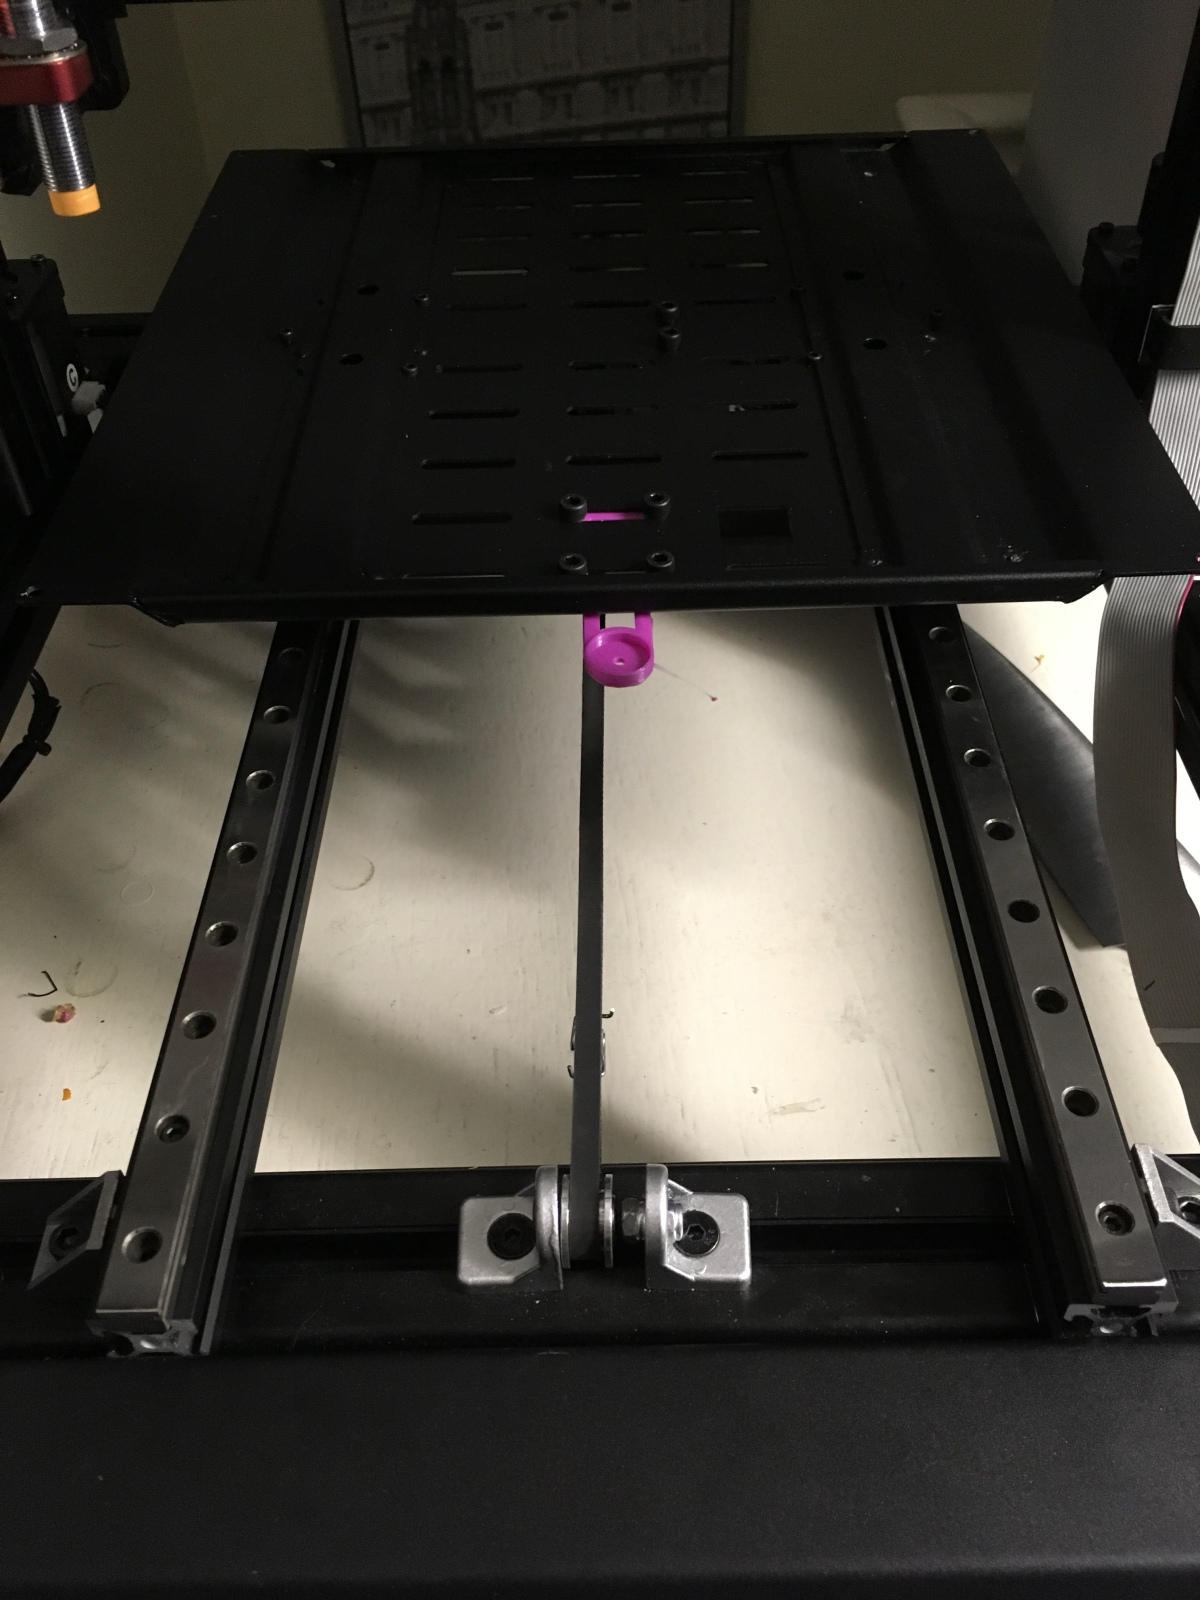 MGN12 rails update – Fitted and The printermoves!